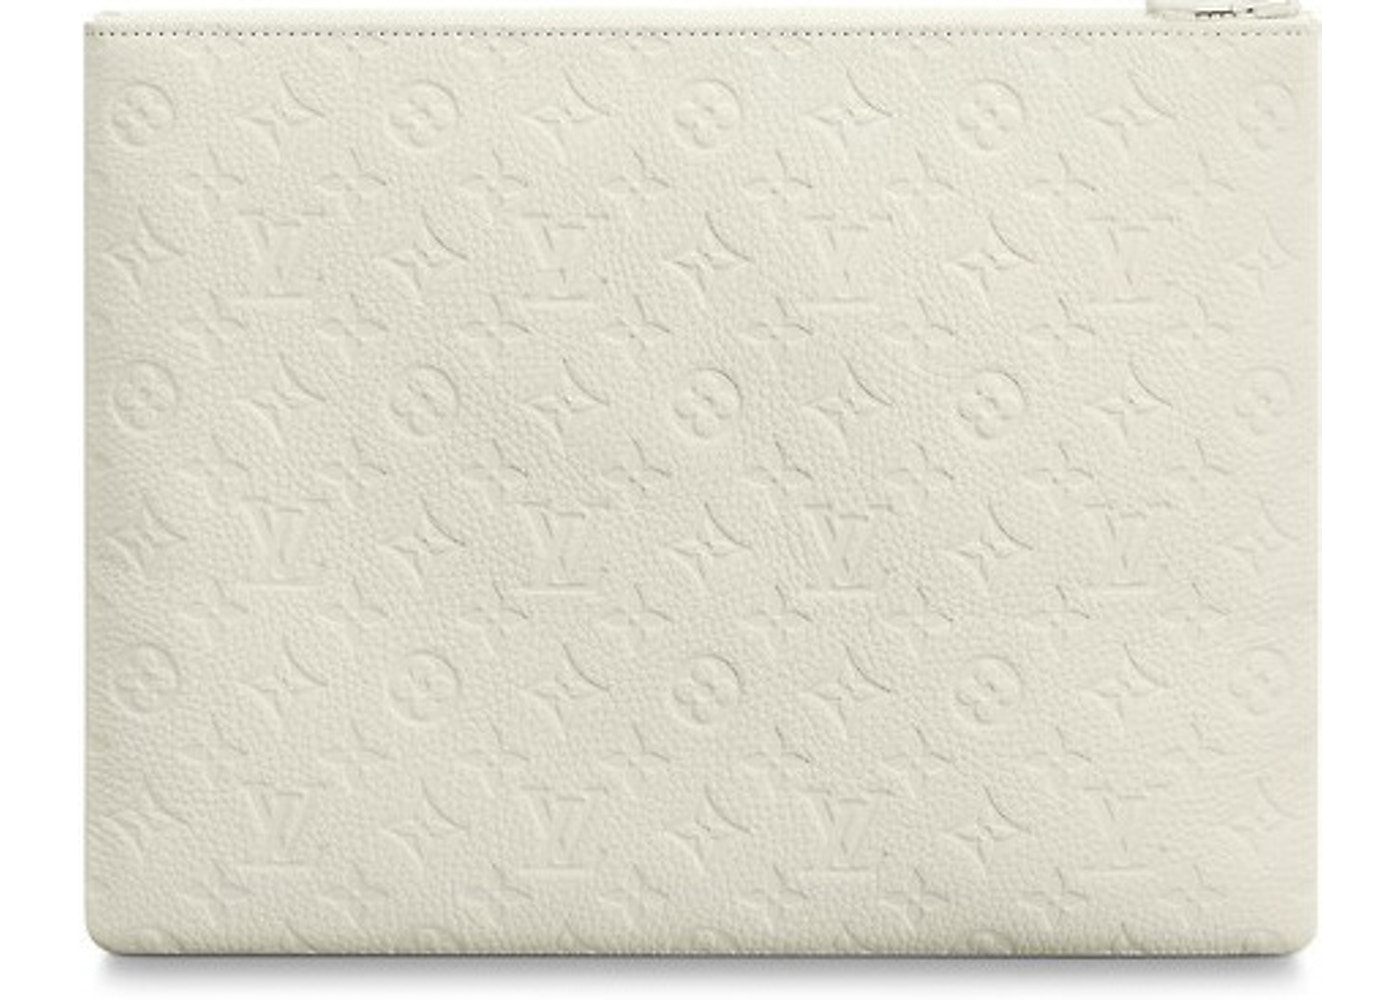 75bb95f43e1d Louis Vuitton A4 Pouch Monogram White